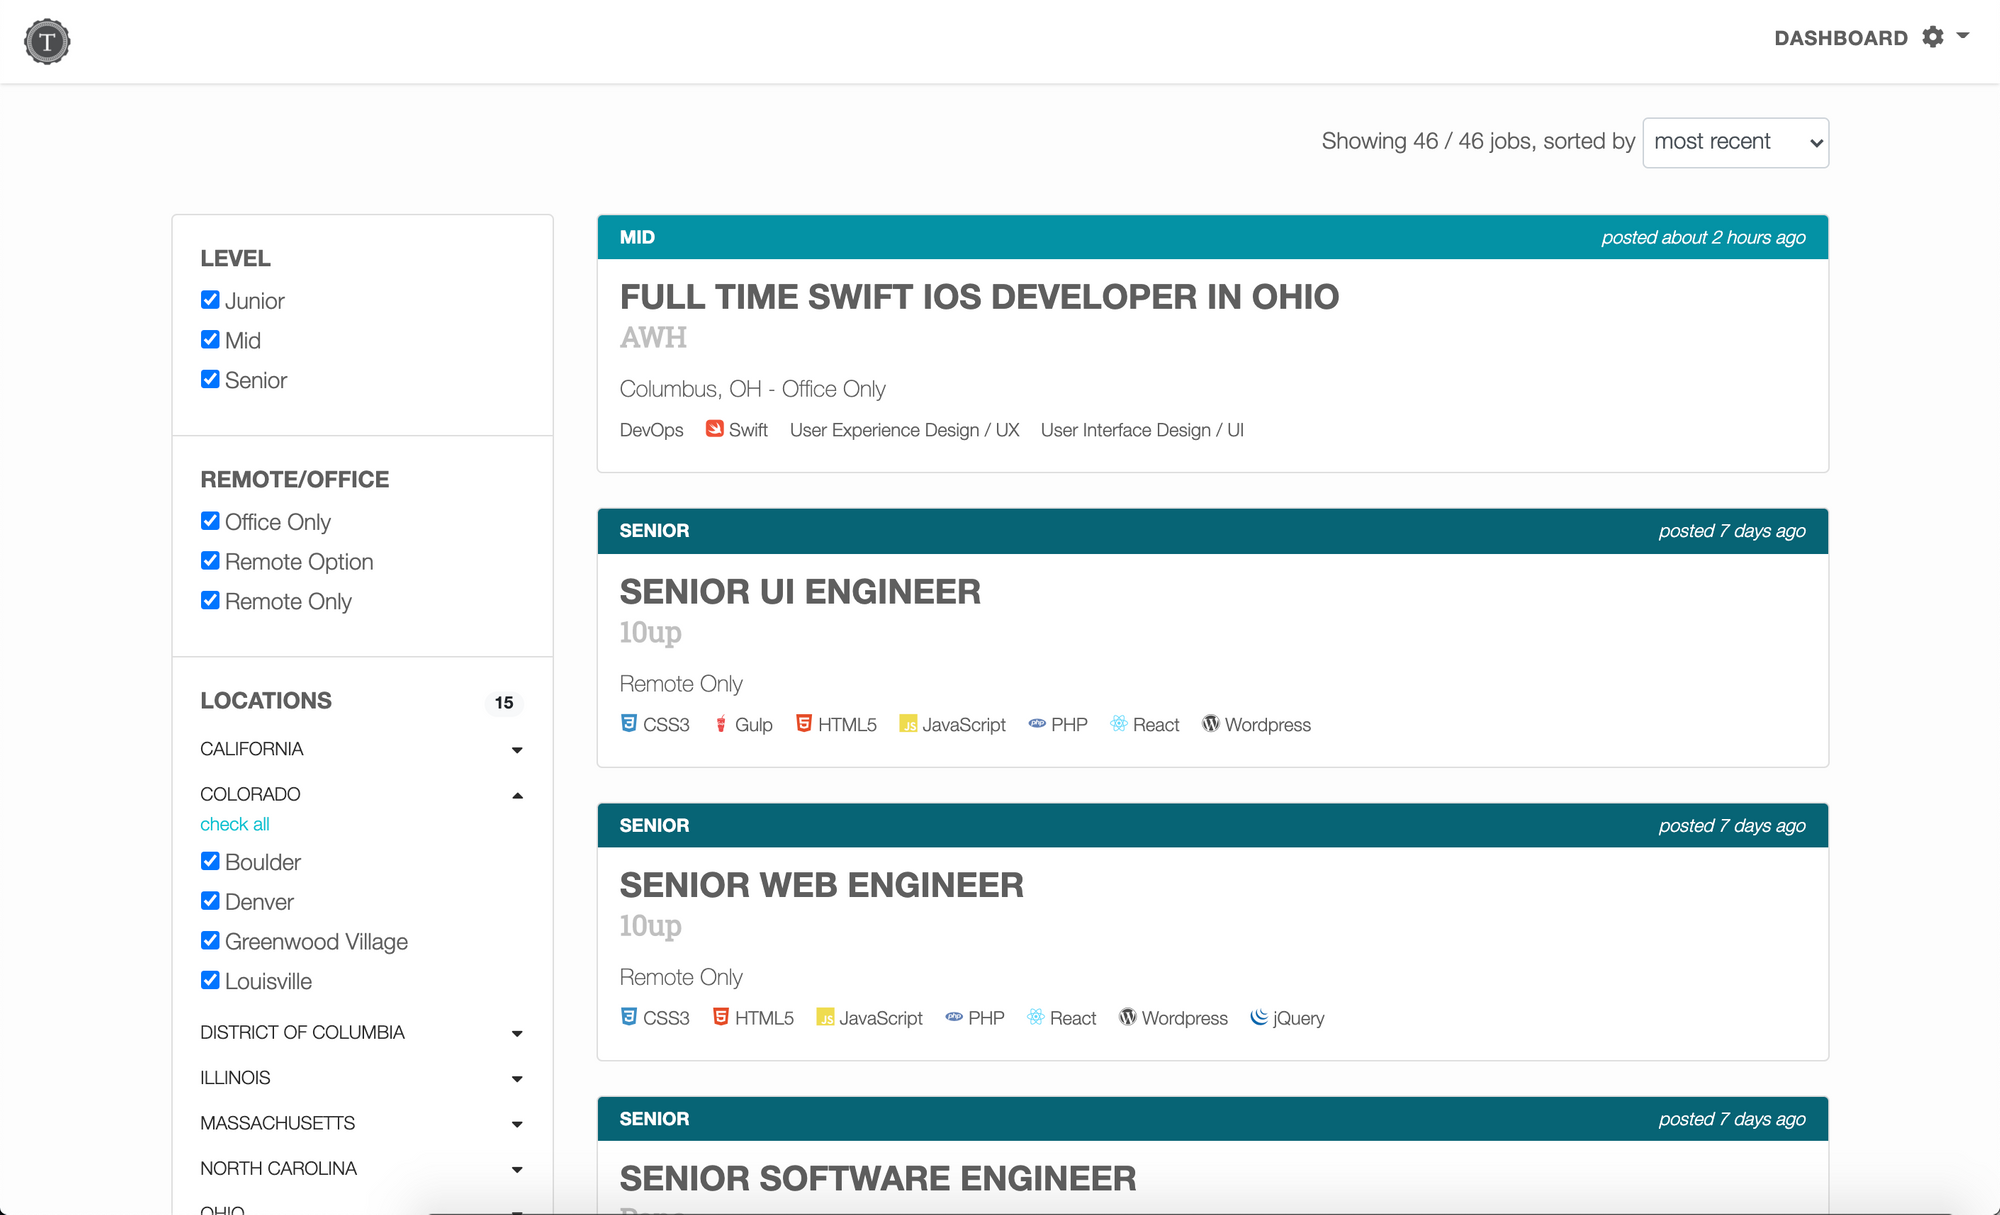 Image of job listings for various tech positions.